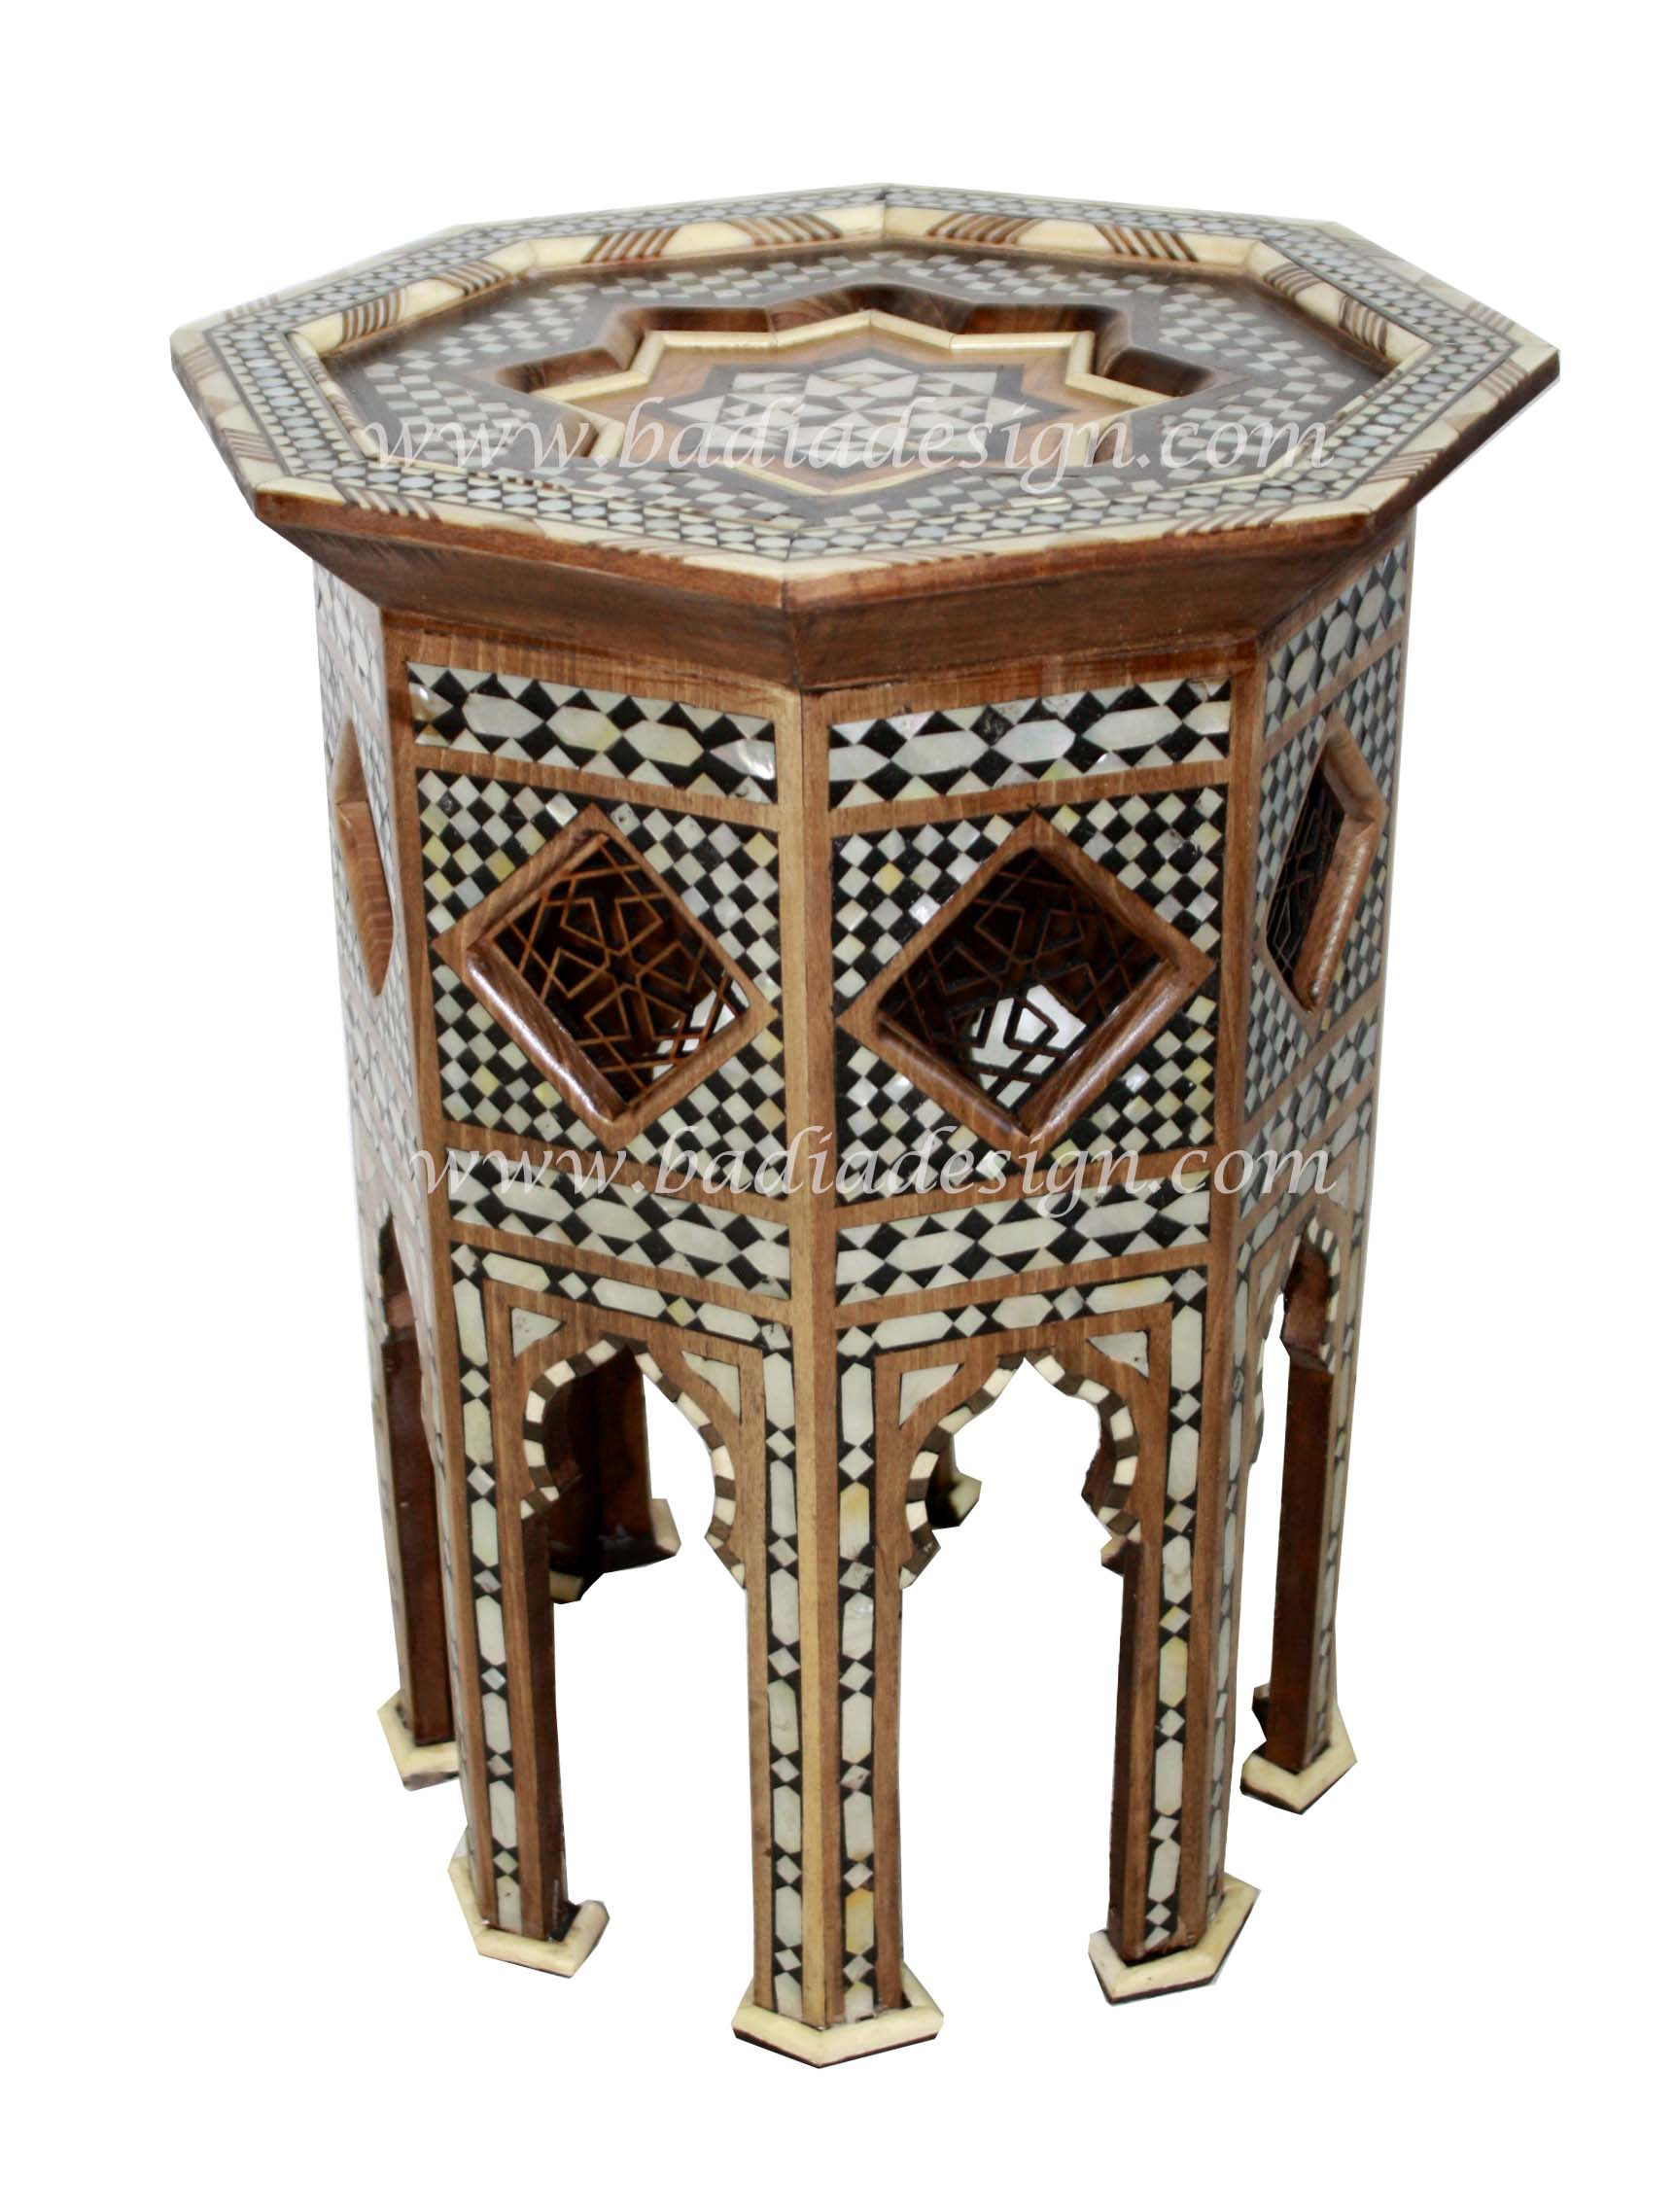 Syrian Design Side Table